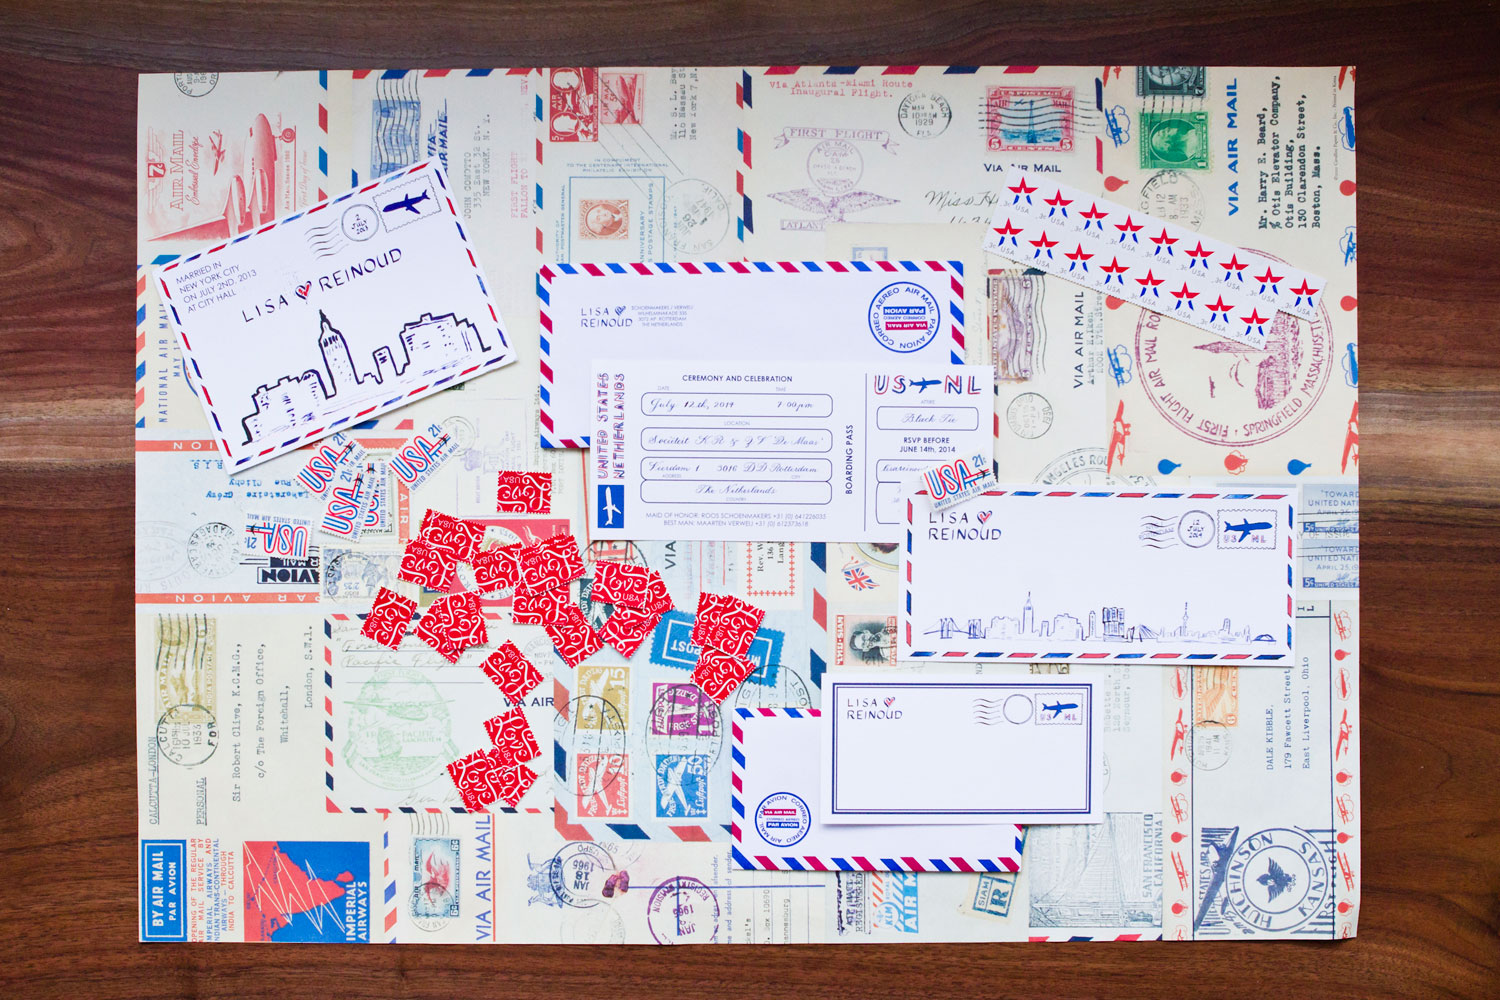 LAURA ANN Airmail inspired wedding stationery suite. The airplane boarding pass invitation design represented the couple's courtship between the Netherlands and New York.